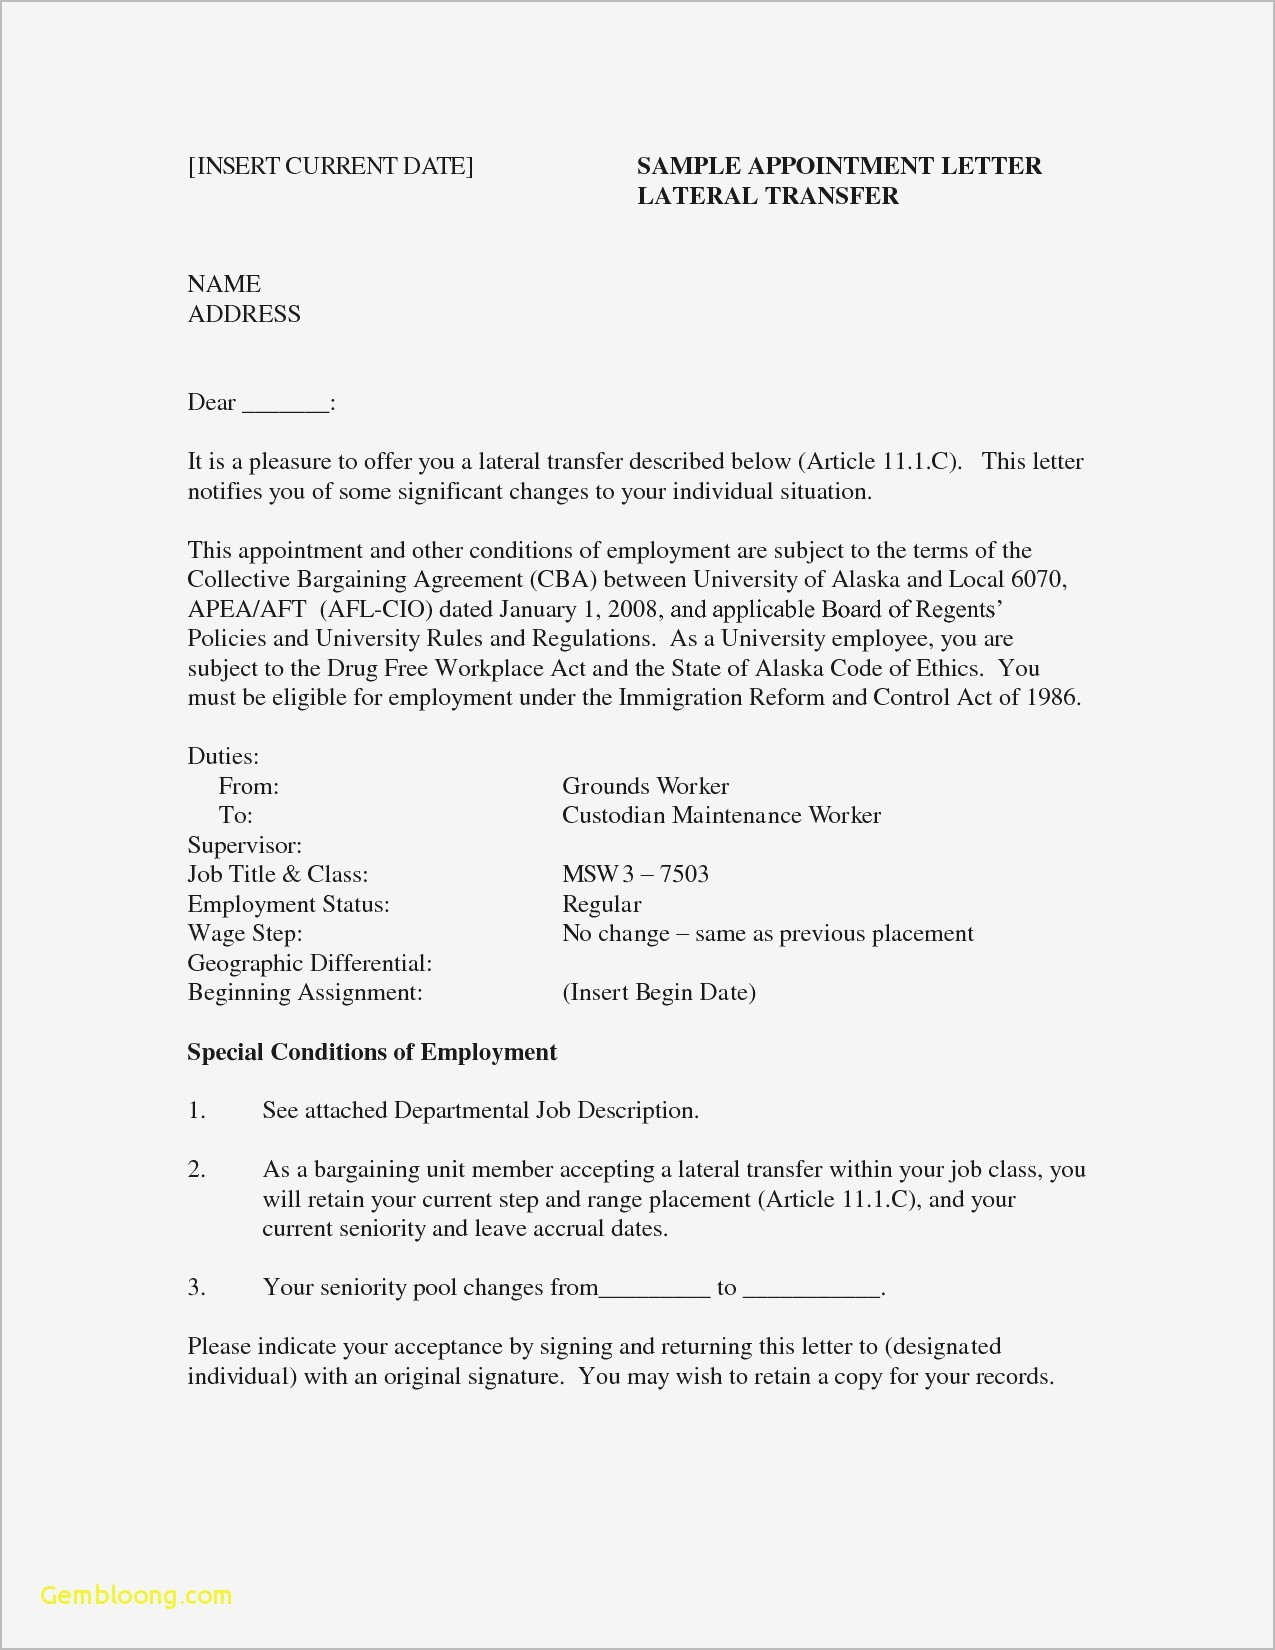 Careercup Resume Template - Functional Resume Builder New Functional Resume Template Word